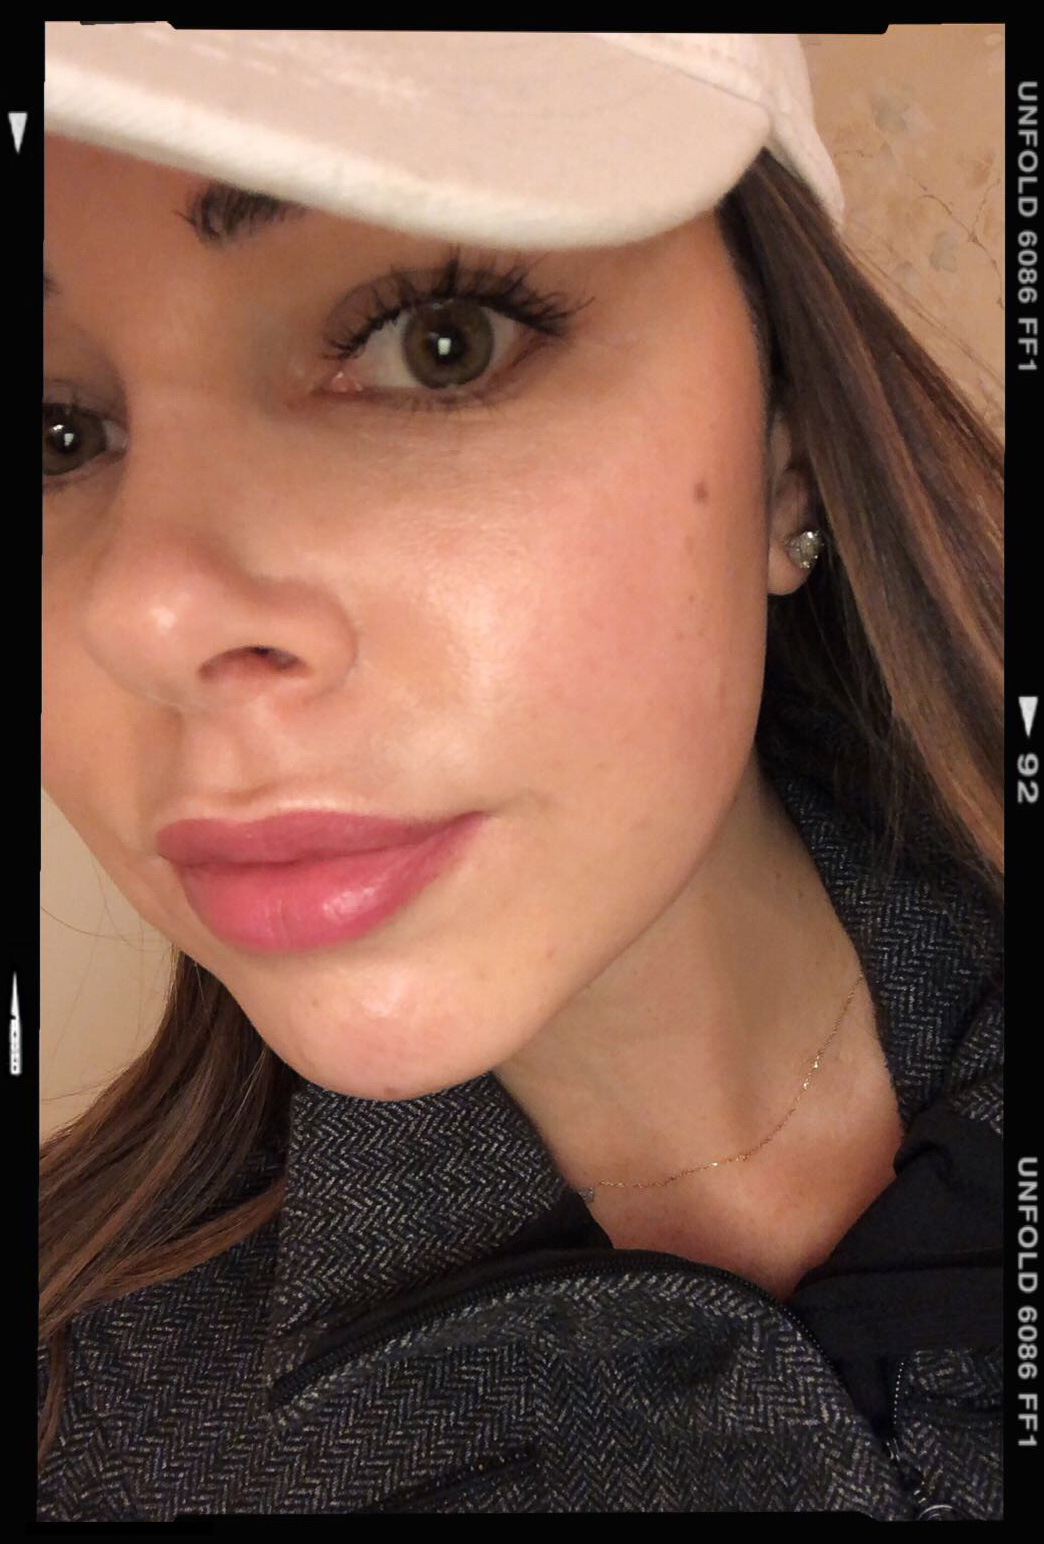 No face makeup proof - how to get glowing, hydrated skin